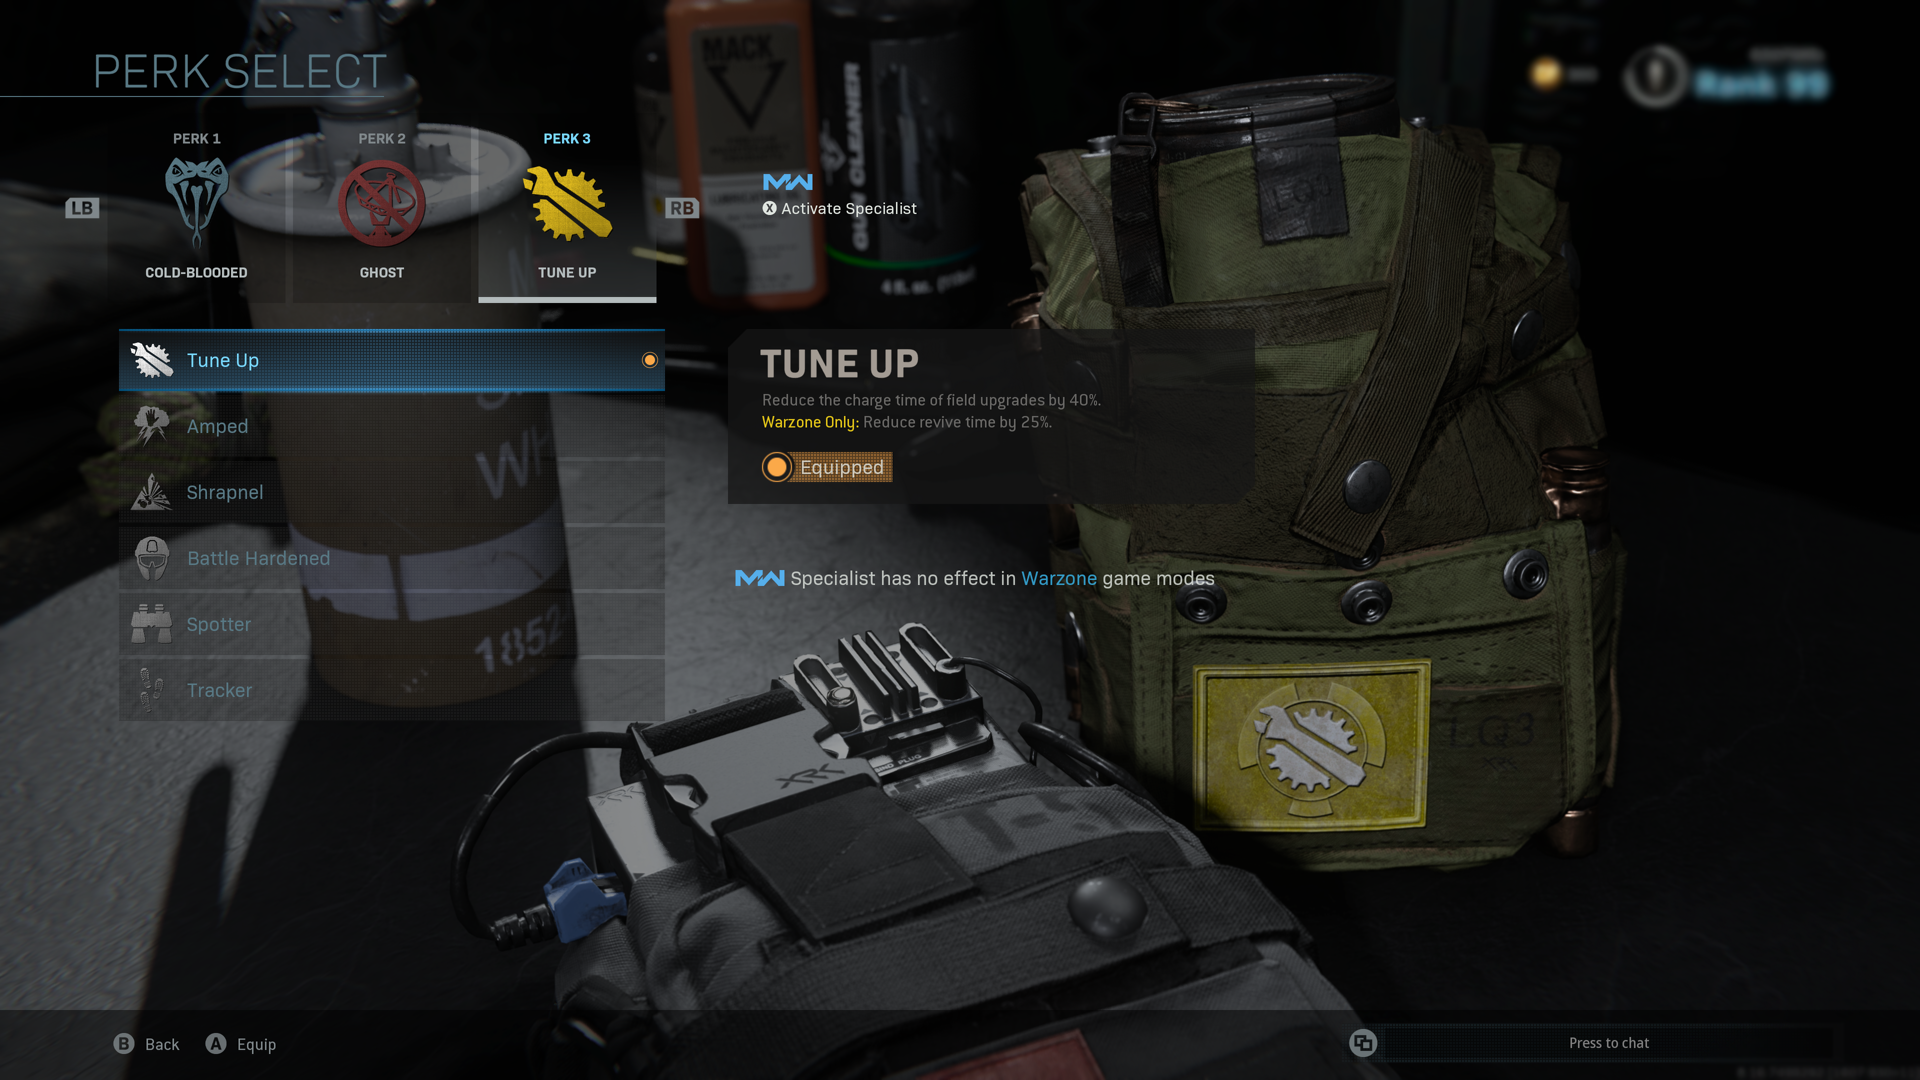 Tune Up perk in Warzone.